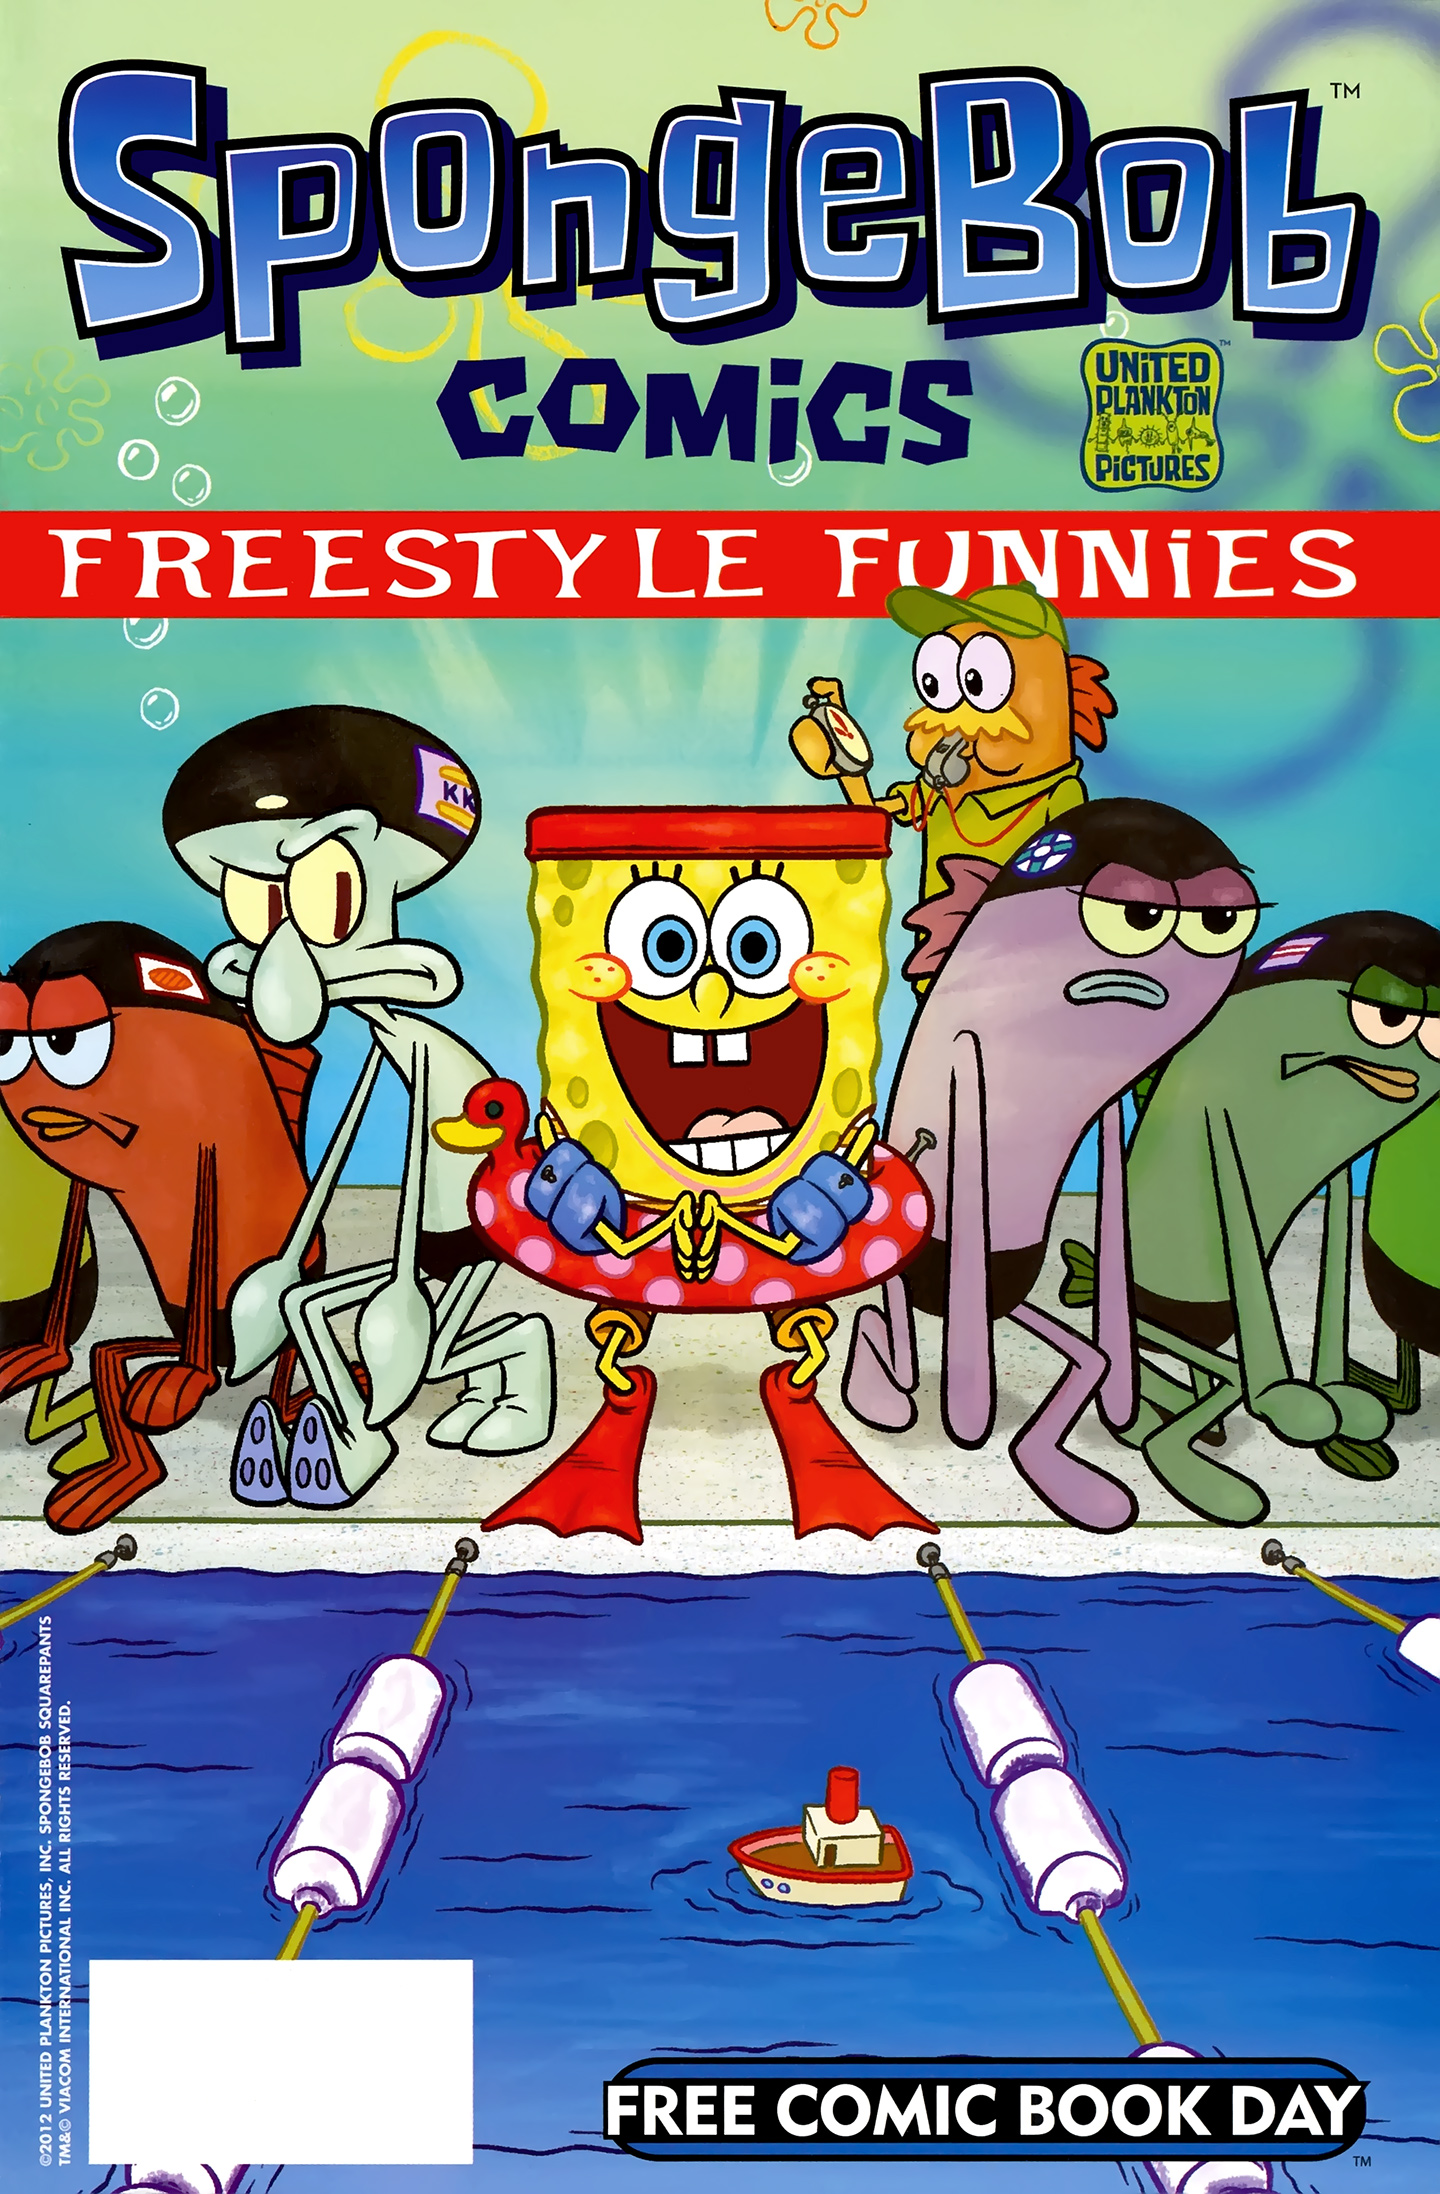 Free Comic Book Day 2012: Freestyle Funnies